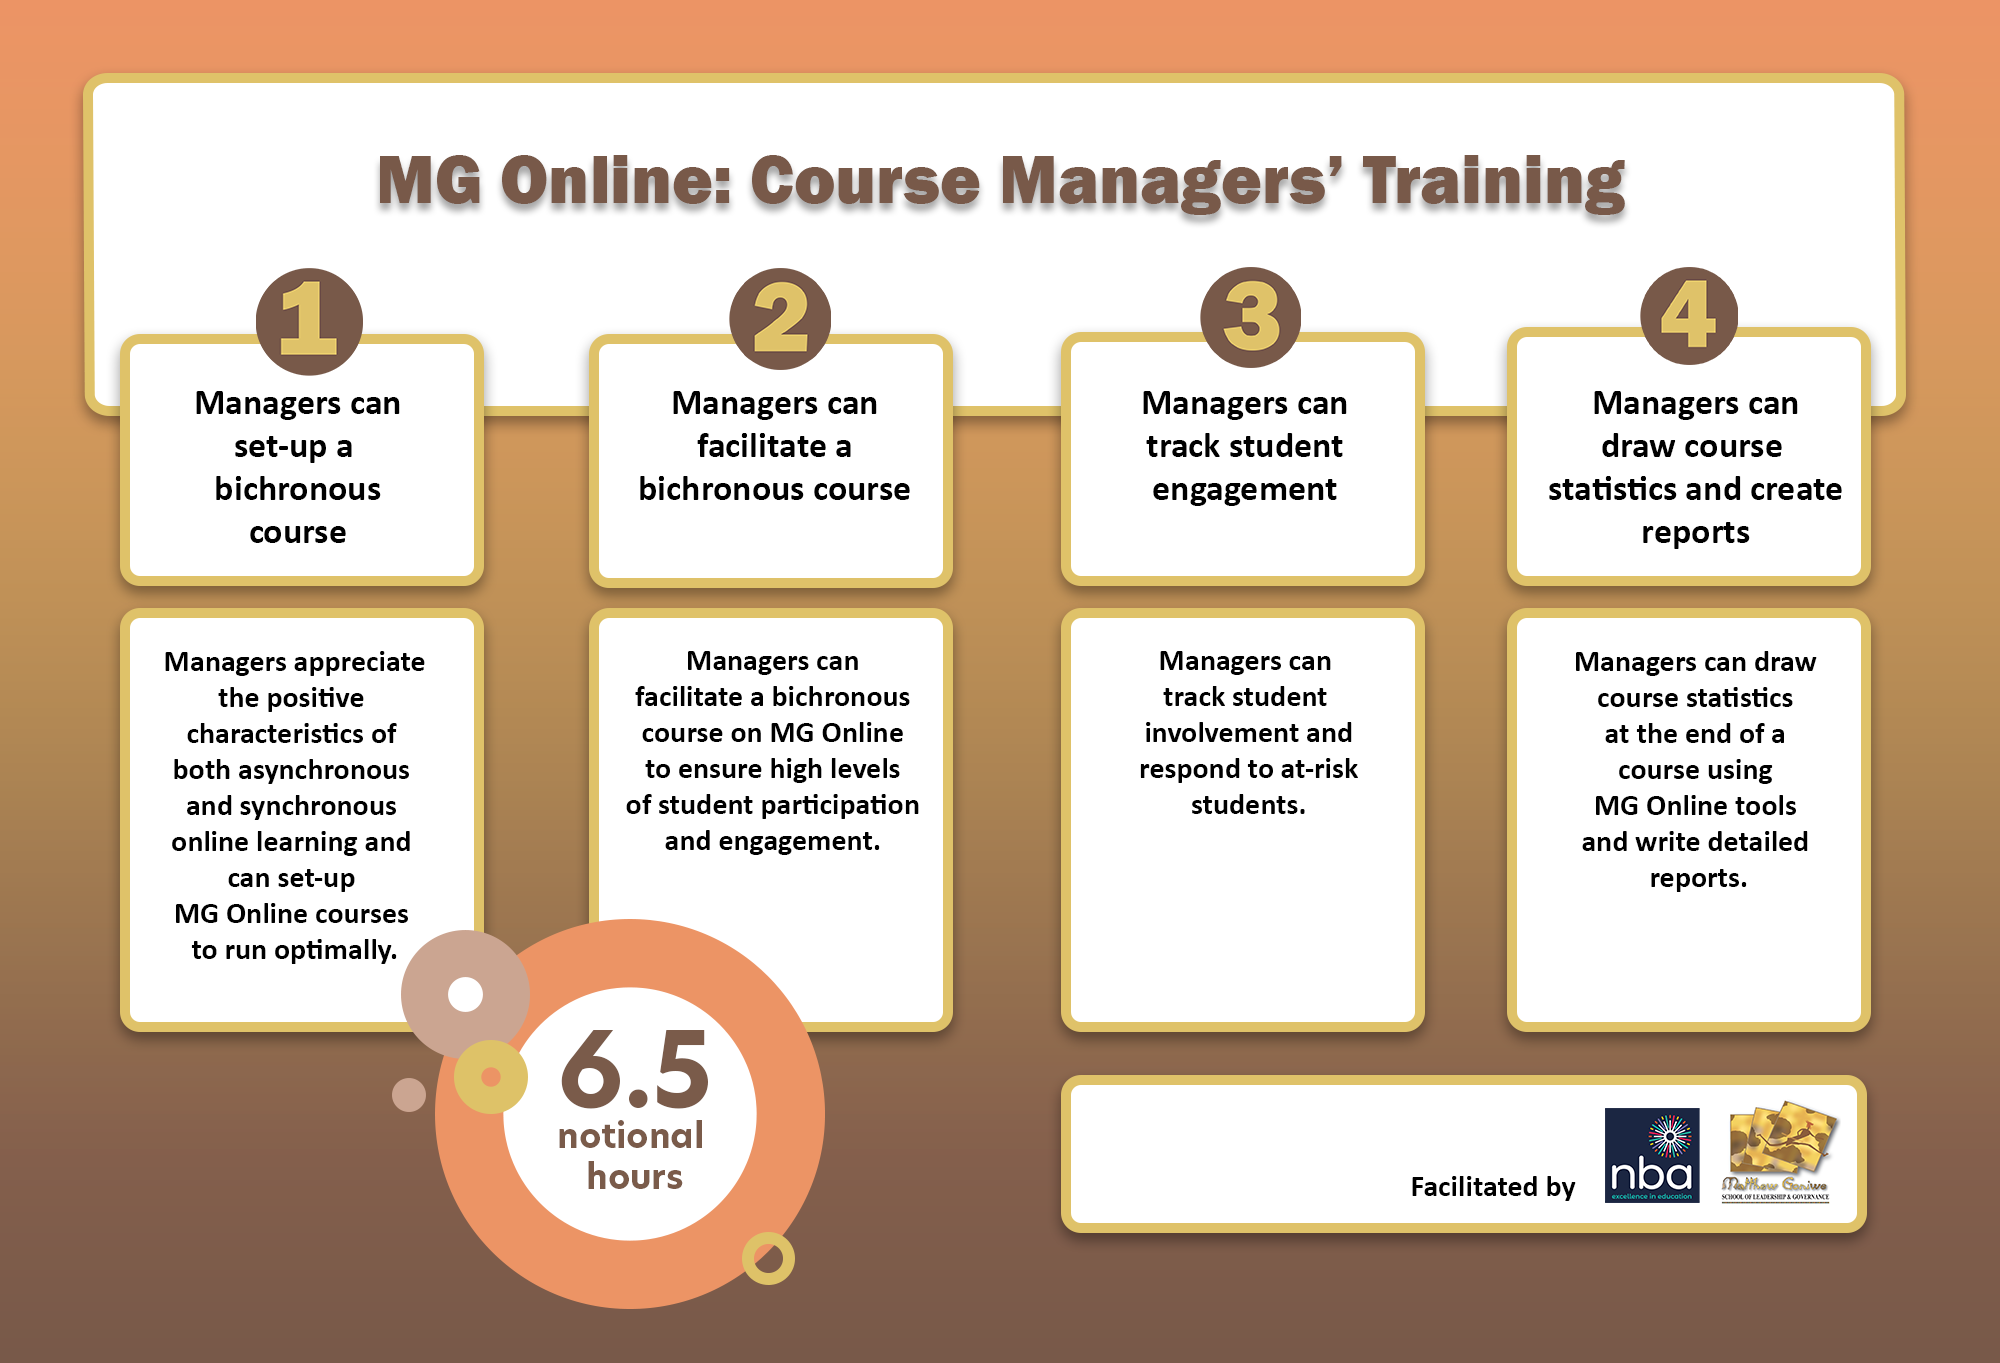 MG Online Course Manager's Training